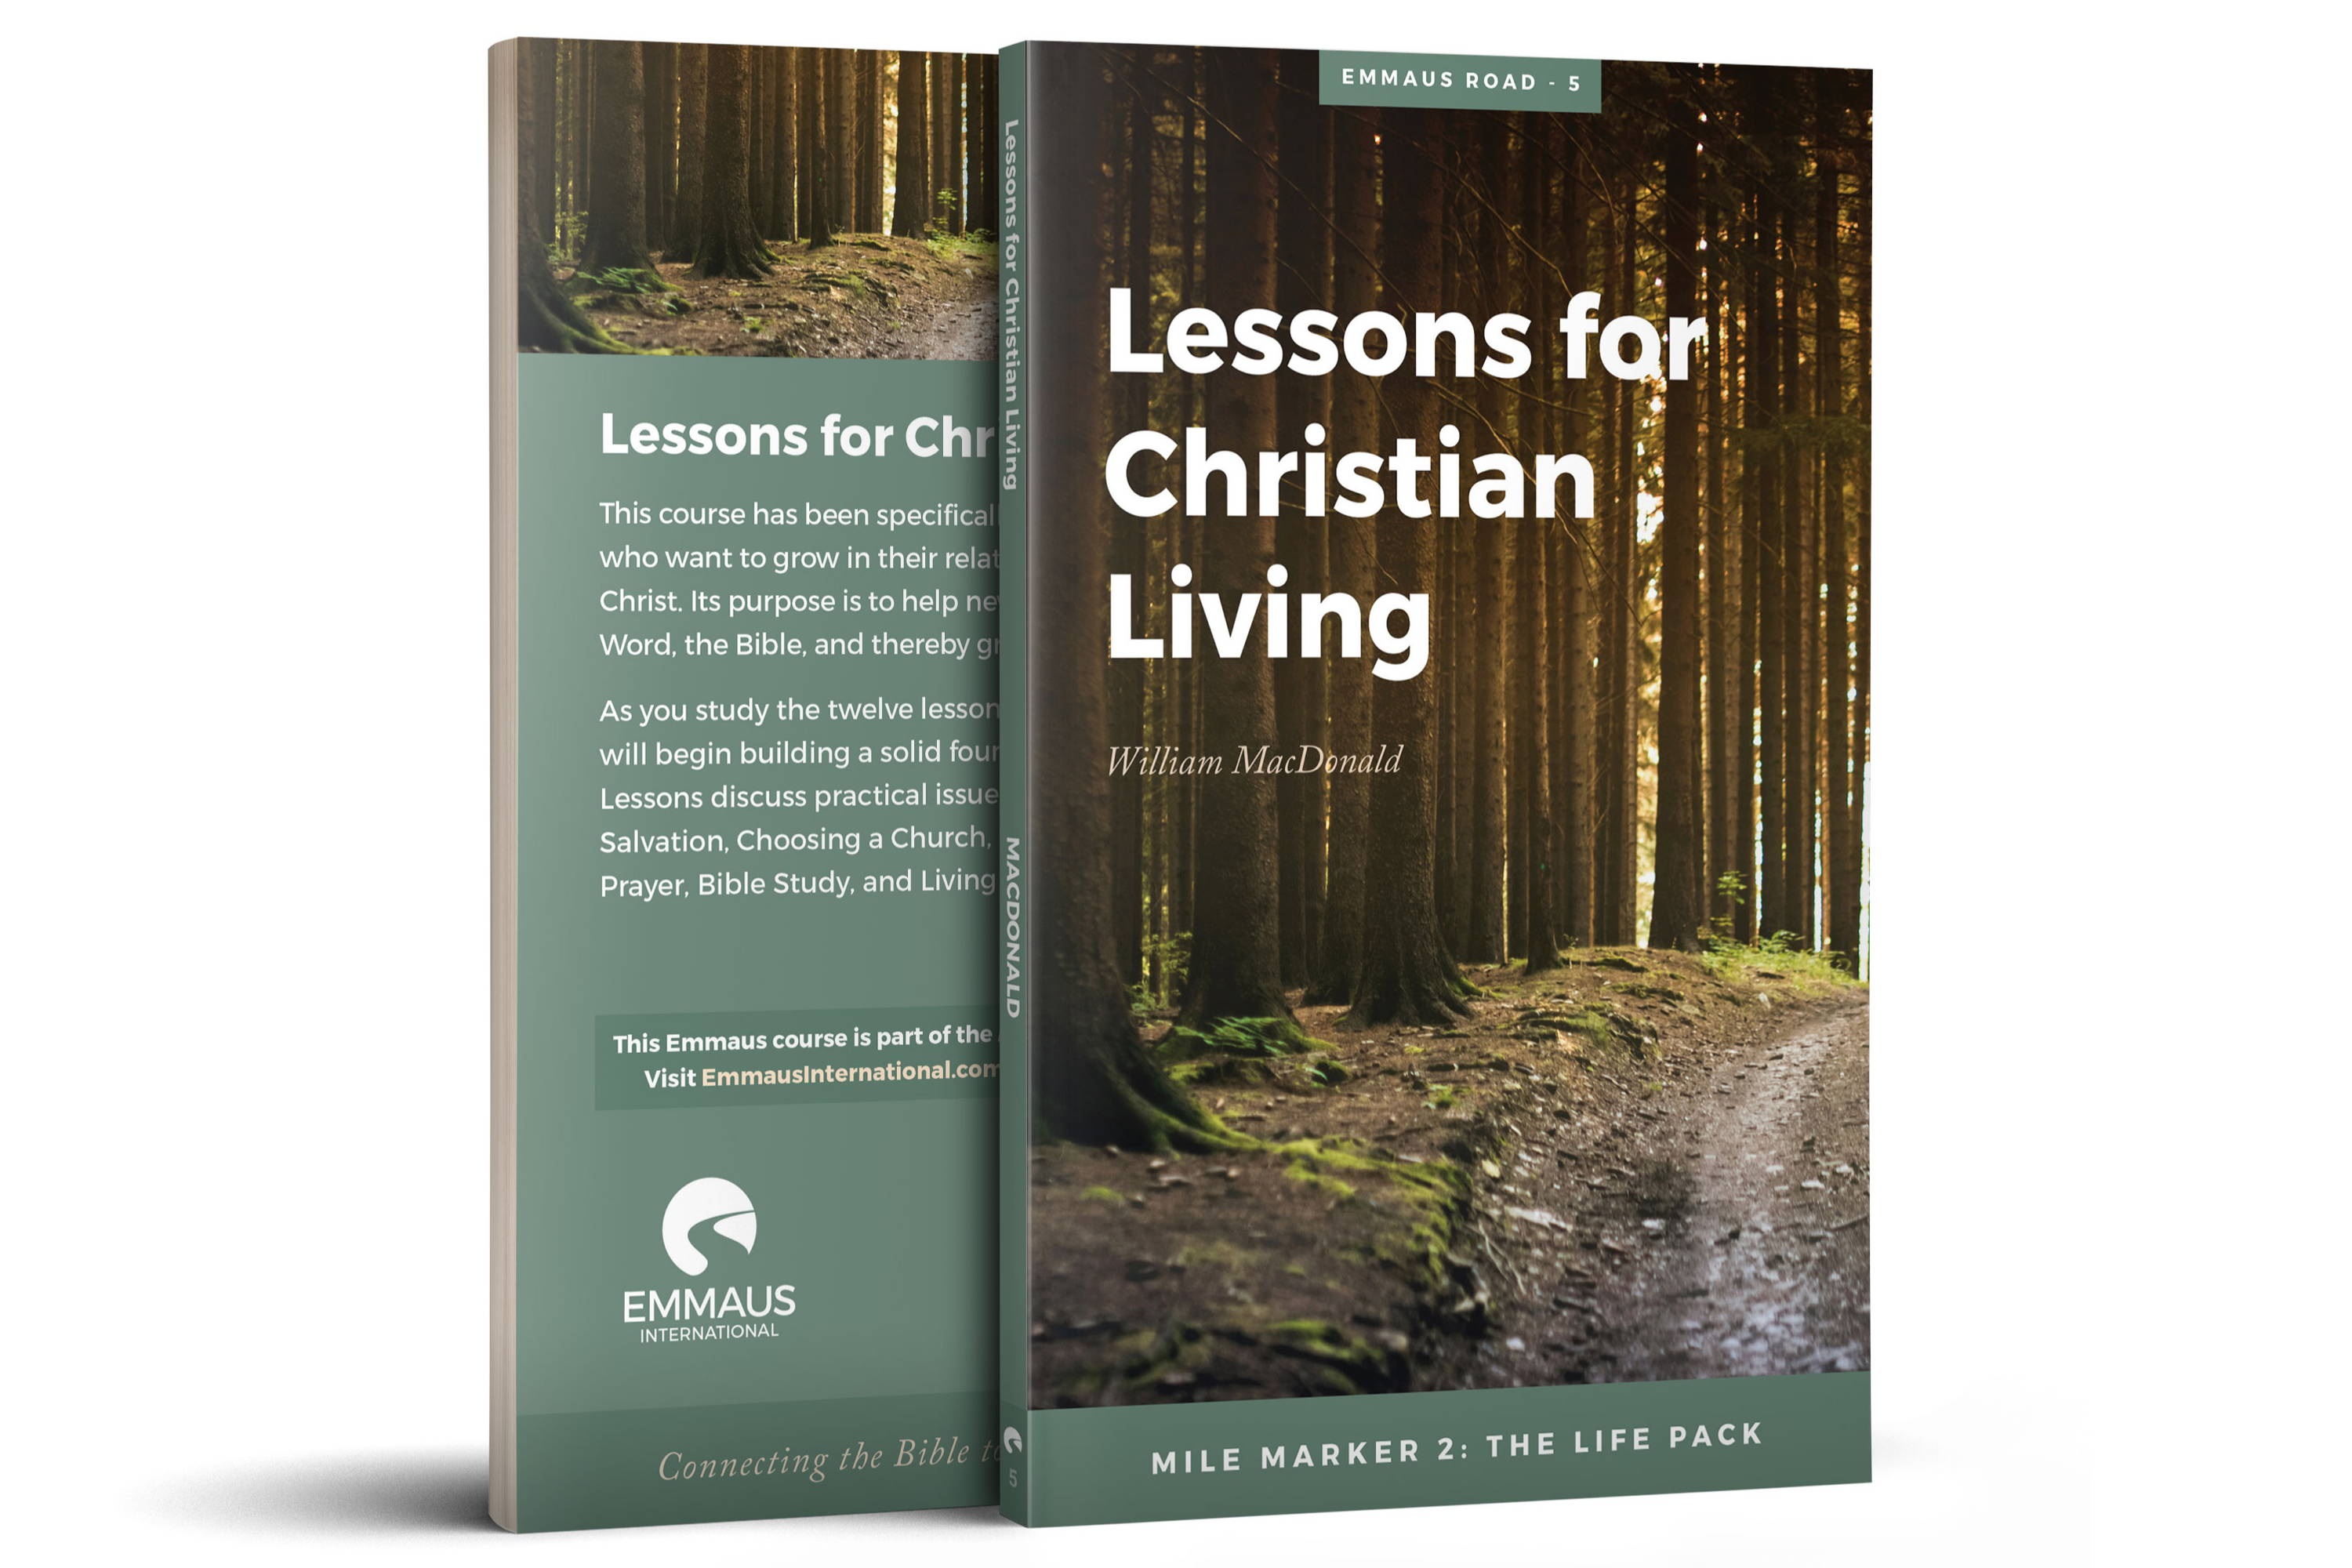 The Emmaus Road – A 24 Course Curriculum - Emmaus International